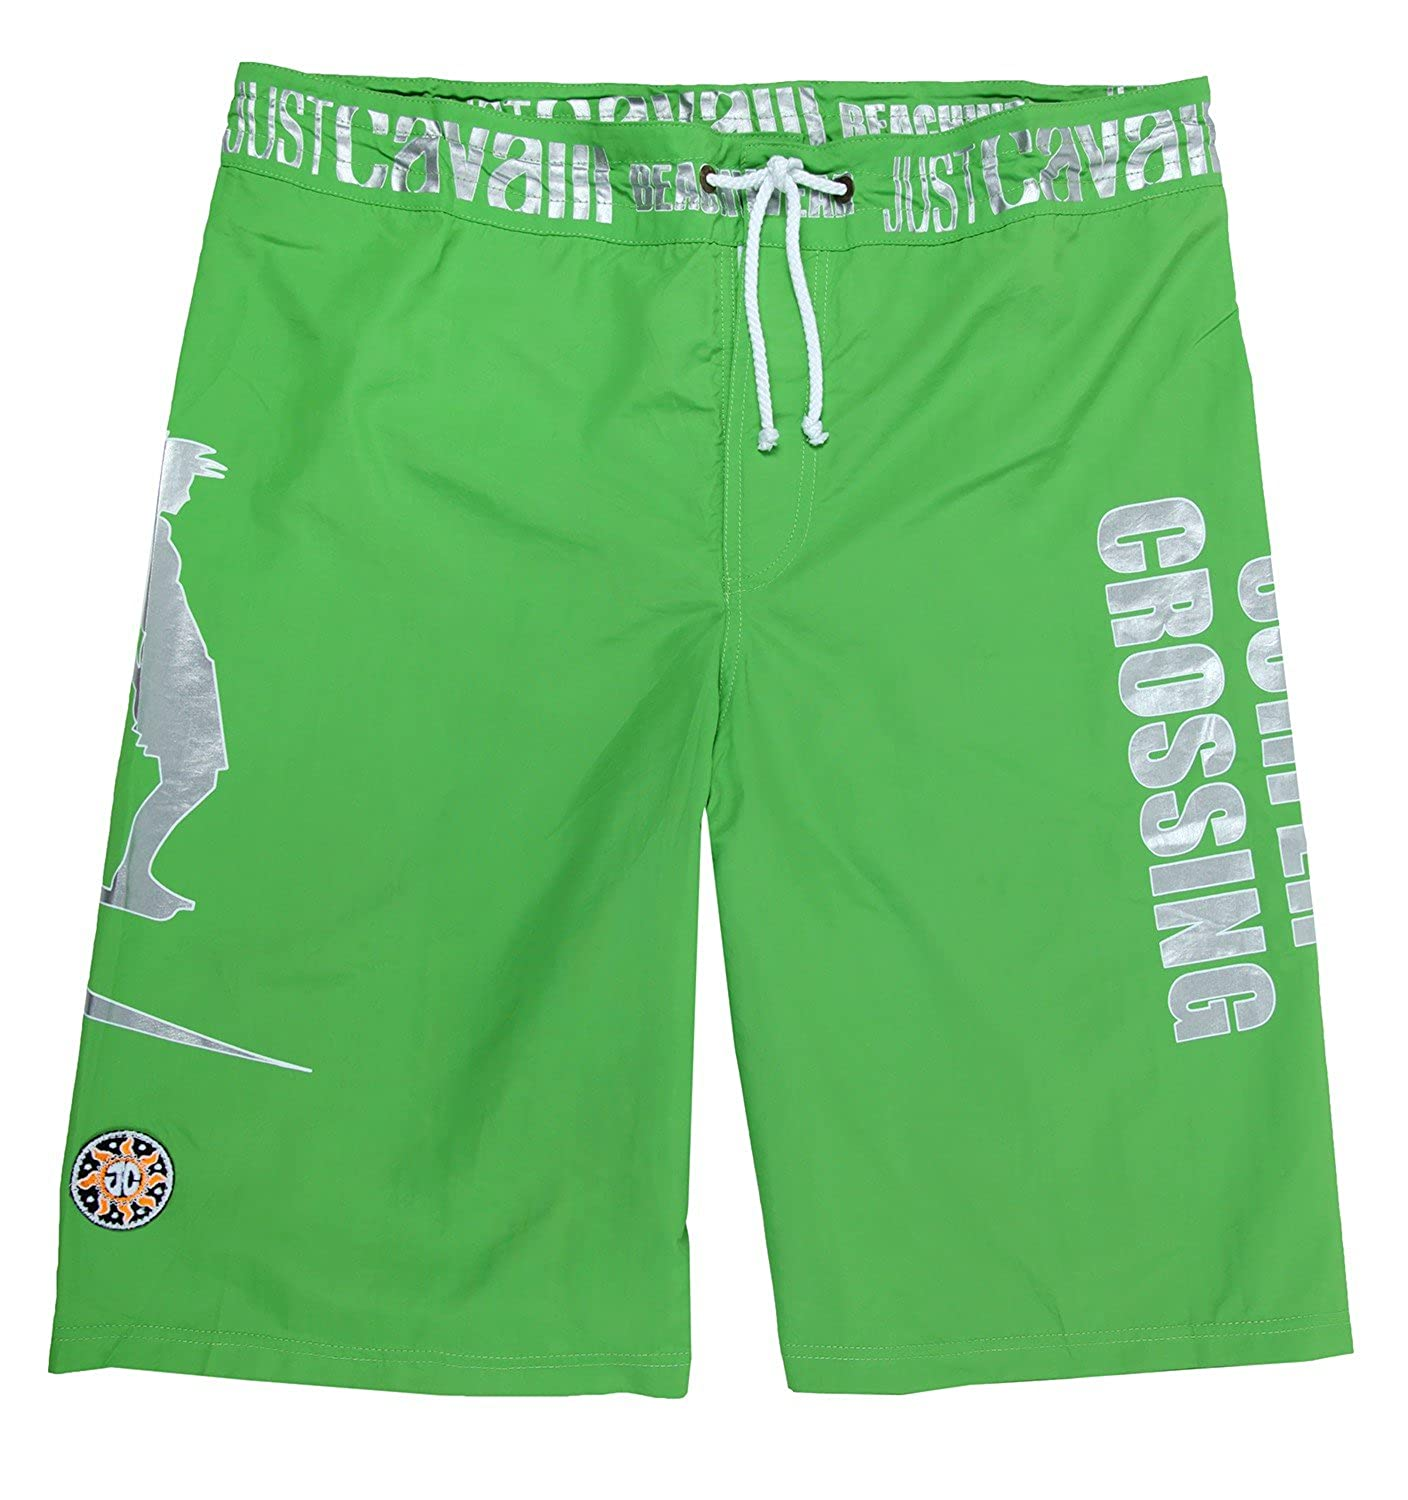 Just Cavalli Beachwear Men Bermuda green A605-36C